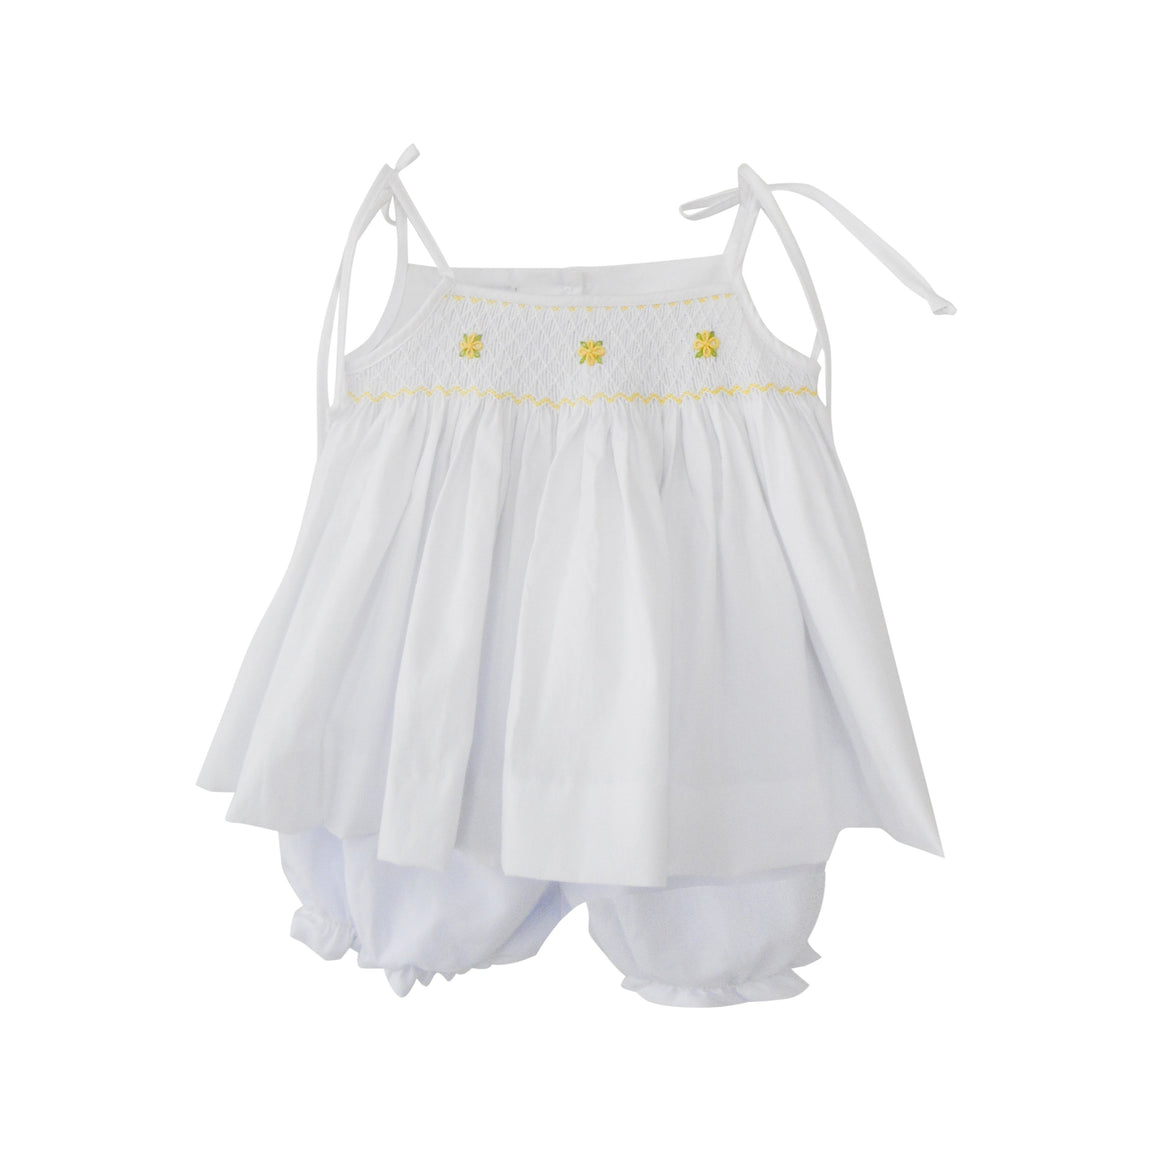 Daffy Smocked Bloomer Set